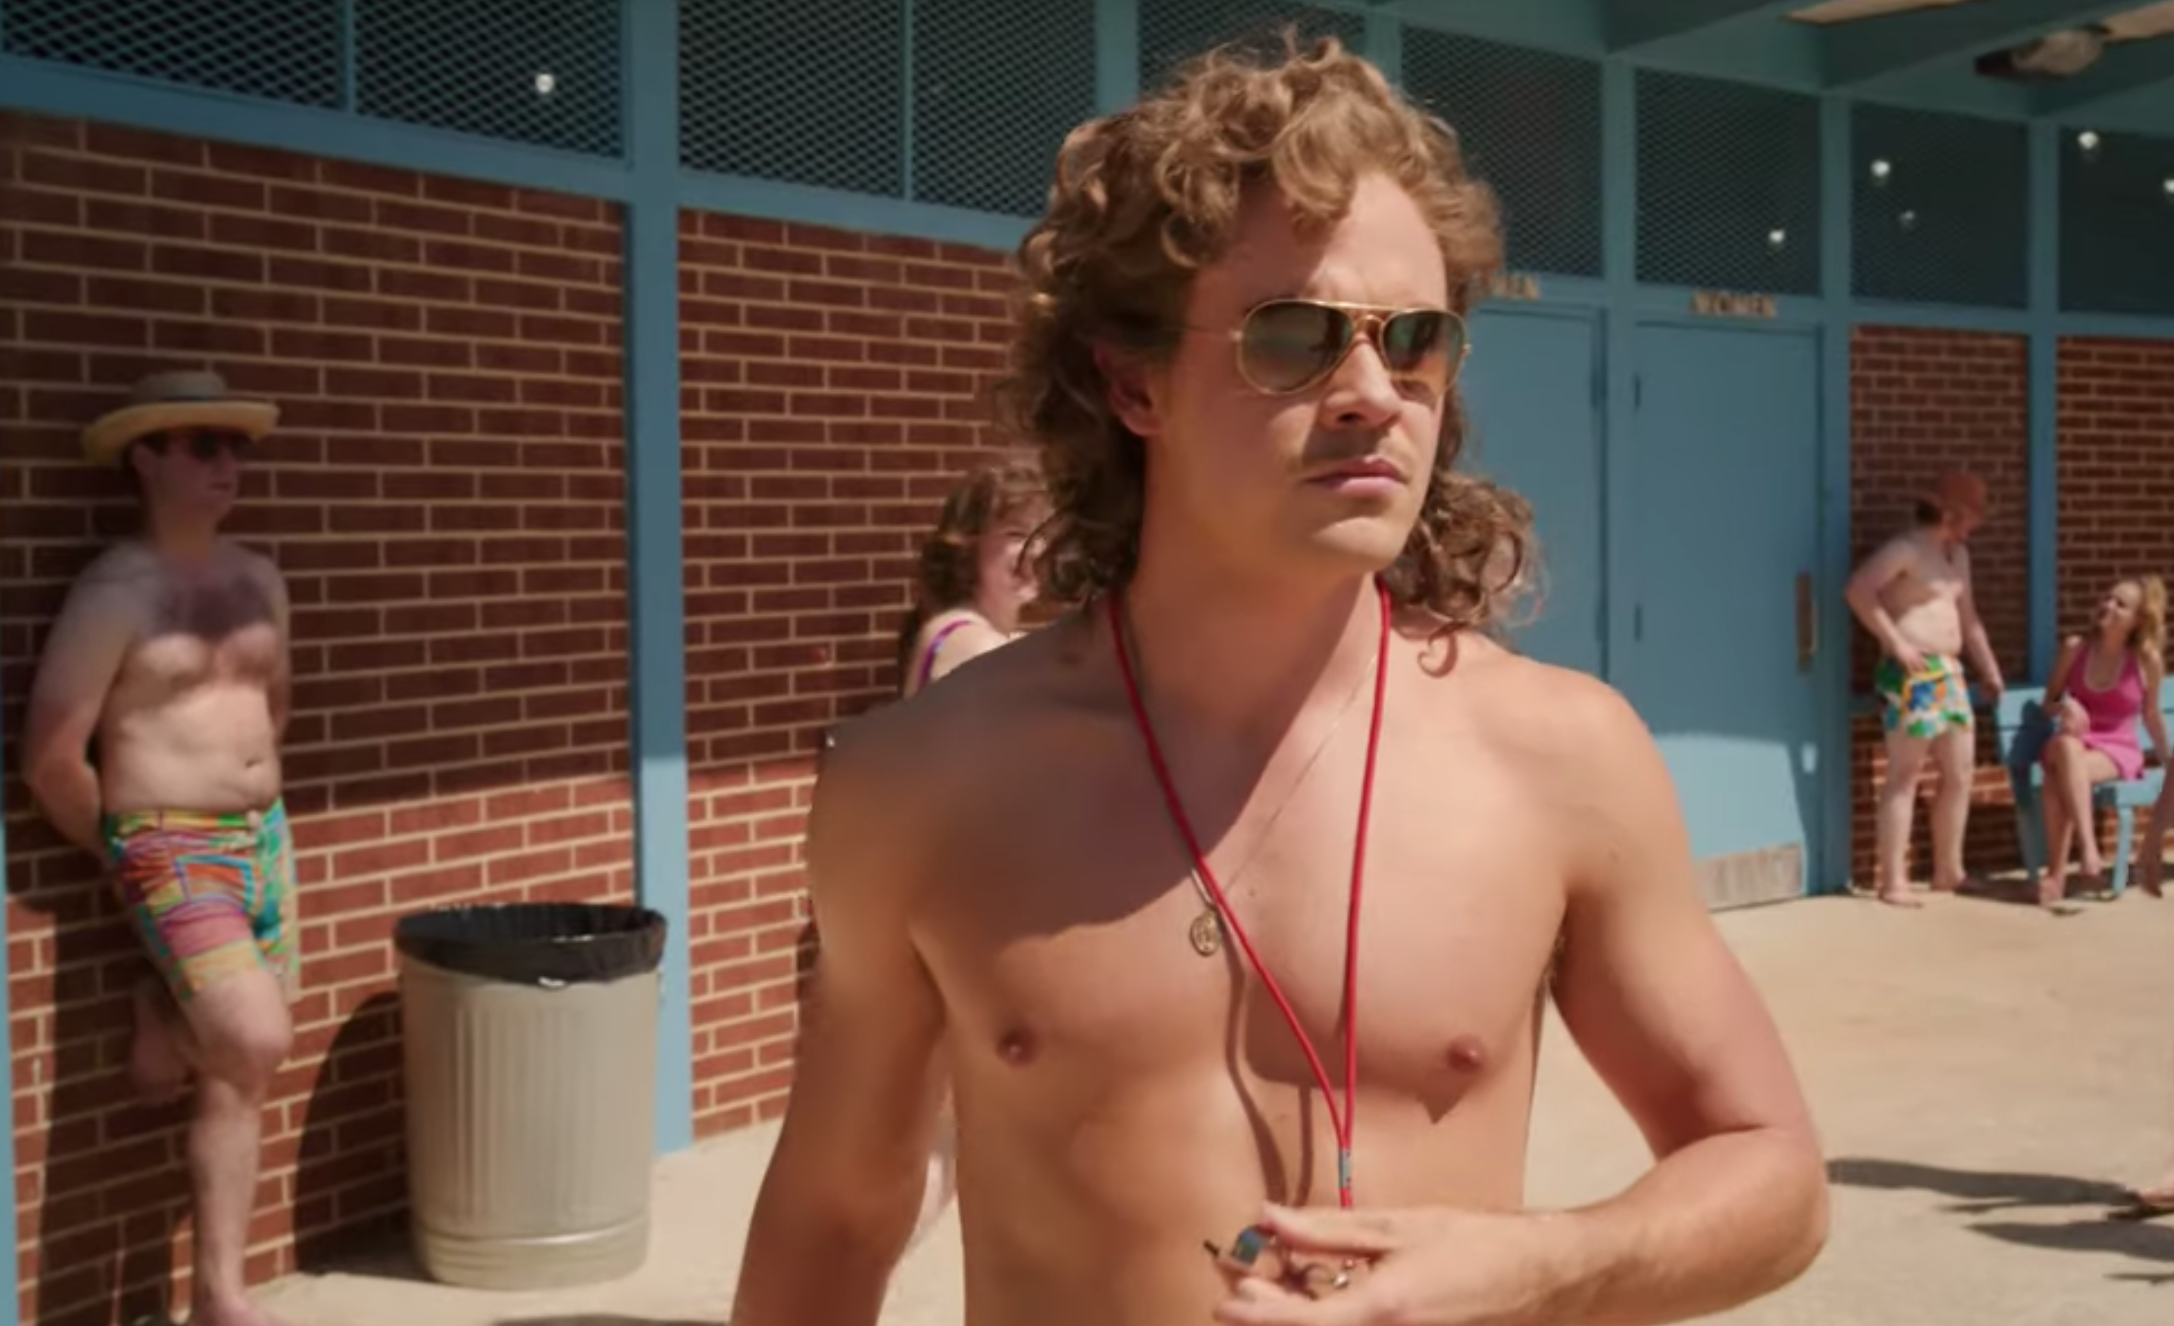 30b09bfda025 ... Stranger Things Season …we know who's being affected by the water, and  it's none other than the town's new lifeguard, Billy Hargrove (Dacre  Montgomery).